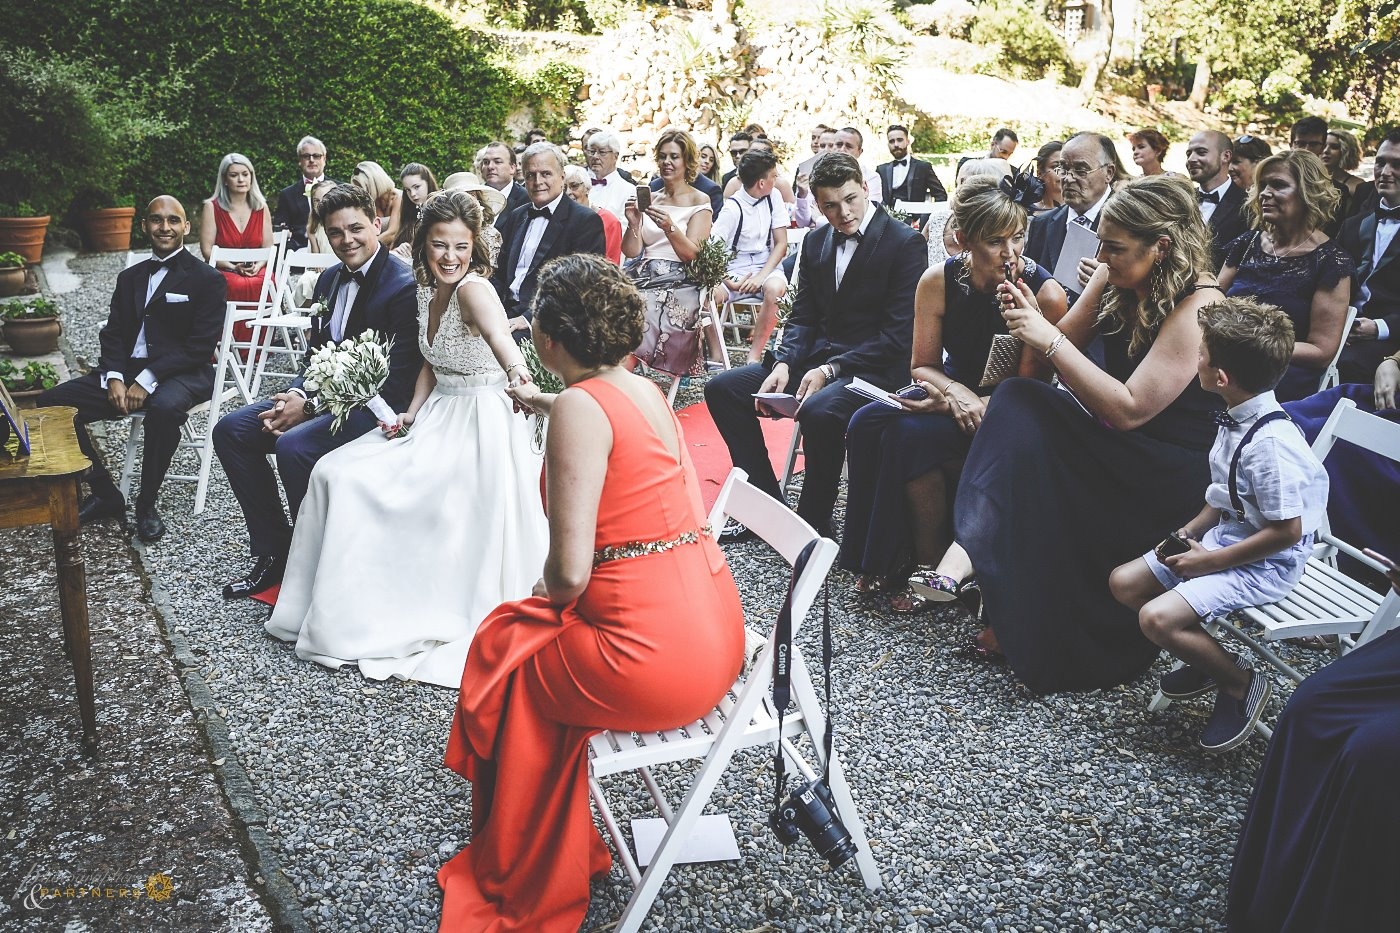 wedding_photos_fattoria_mansi_bernardini_05.jpg